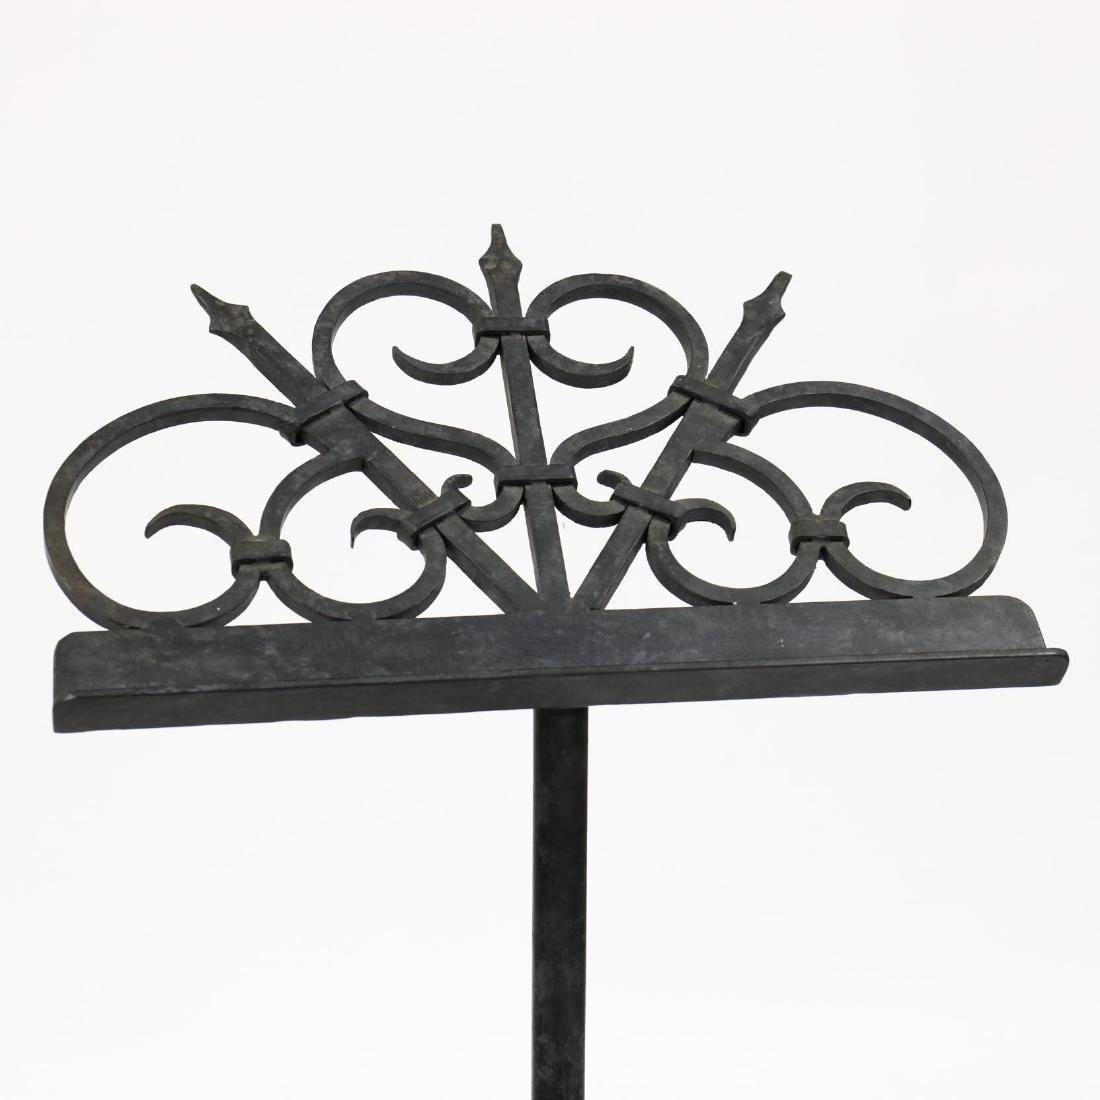 Spanish Classical Wrought Iron Lectern - 3